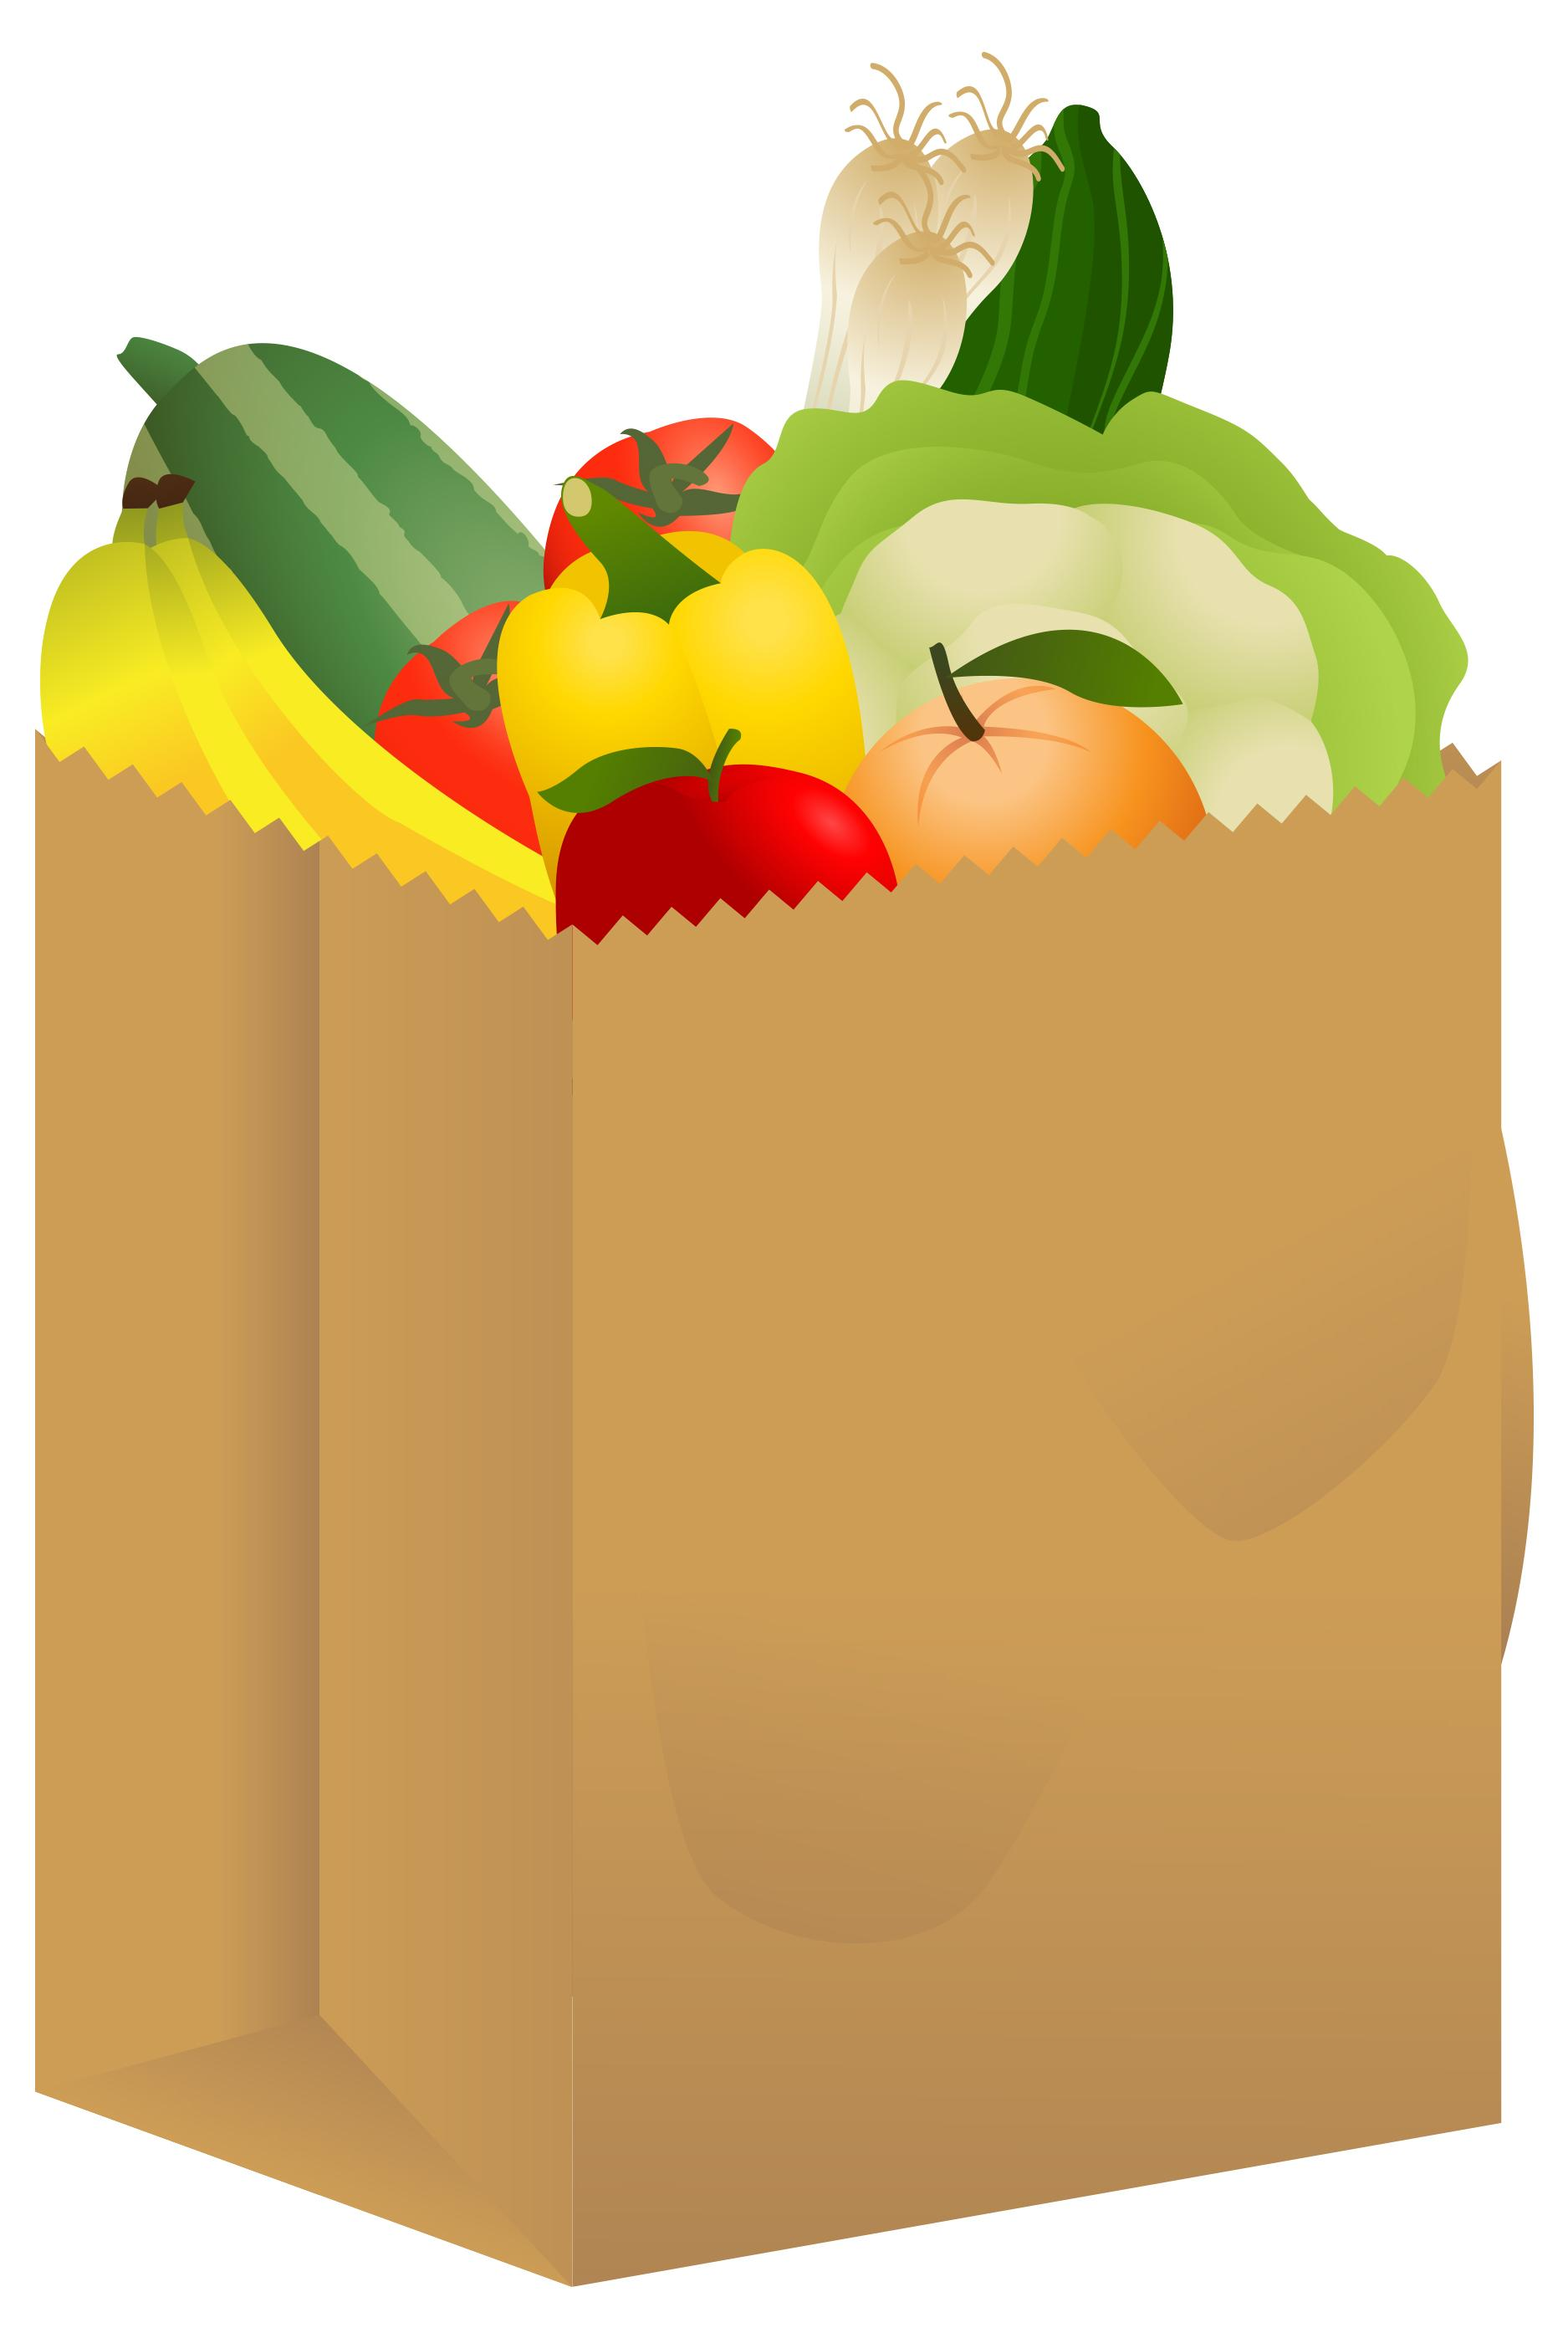 Arms around grocery sack clipart clipart images gallery for.